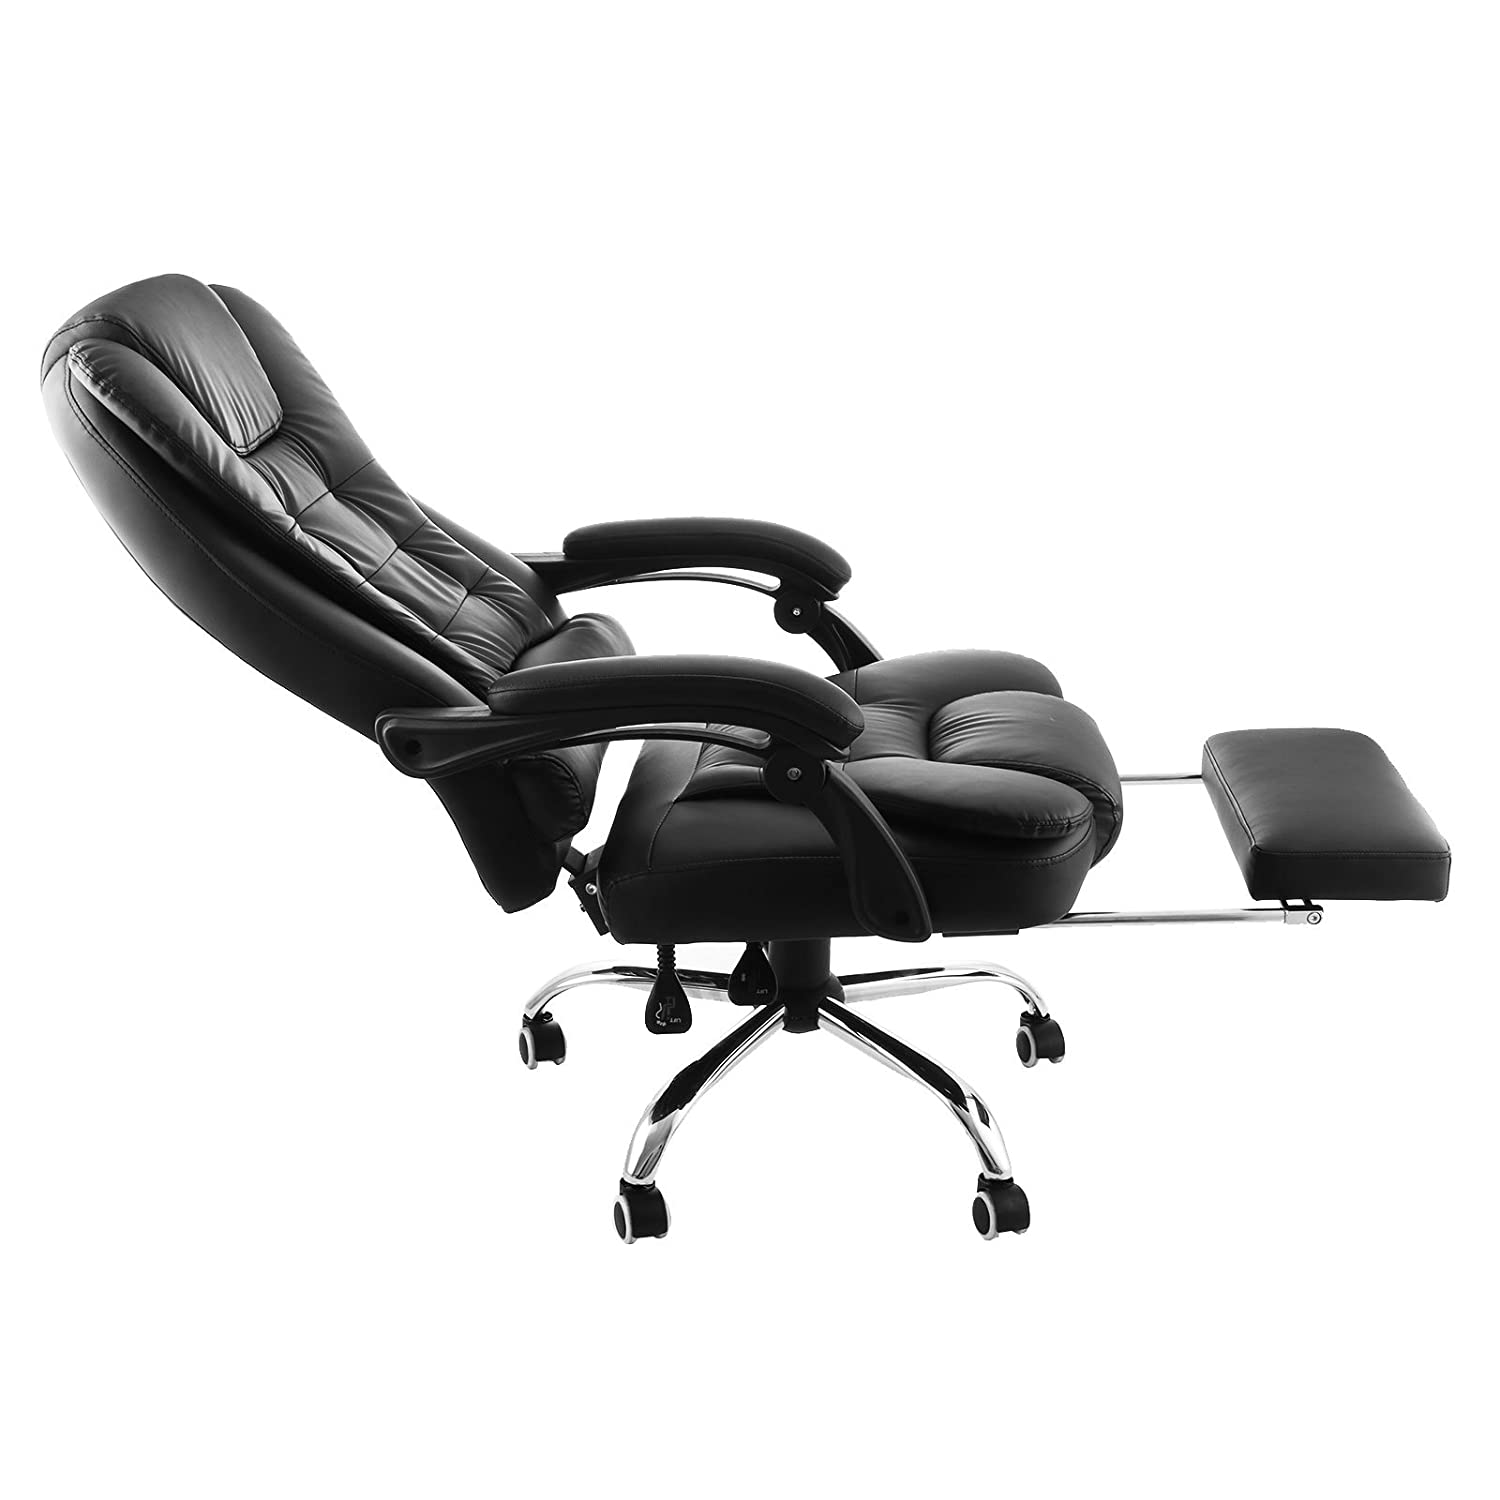 reclining walmart desk ip swivel gaming chair bcp recliner leather racing office back executive com pu